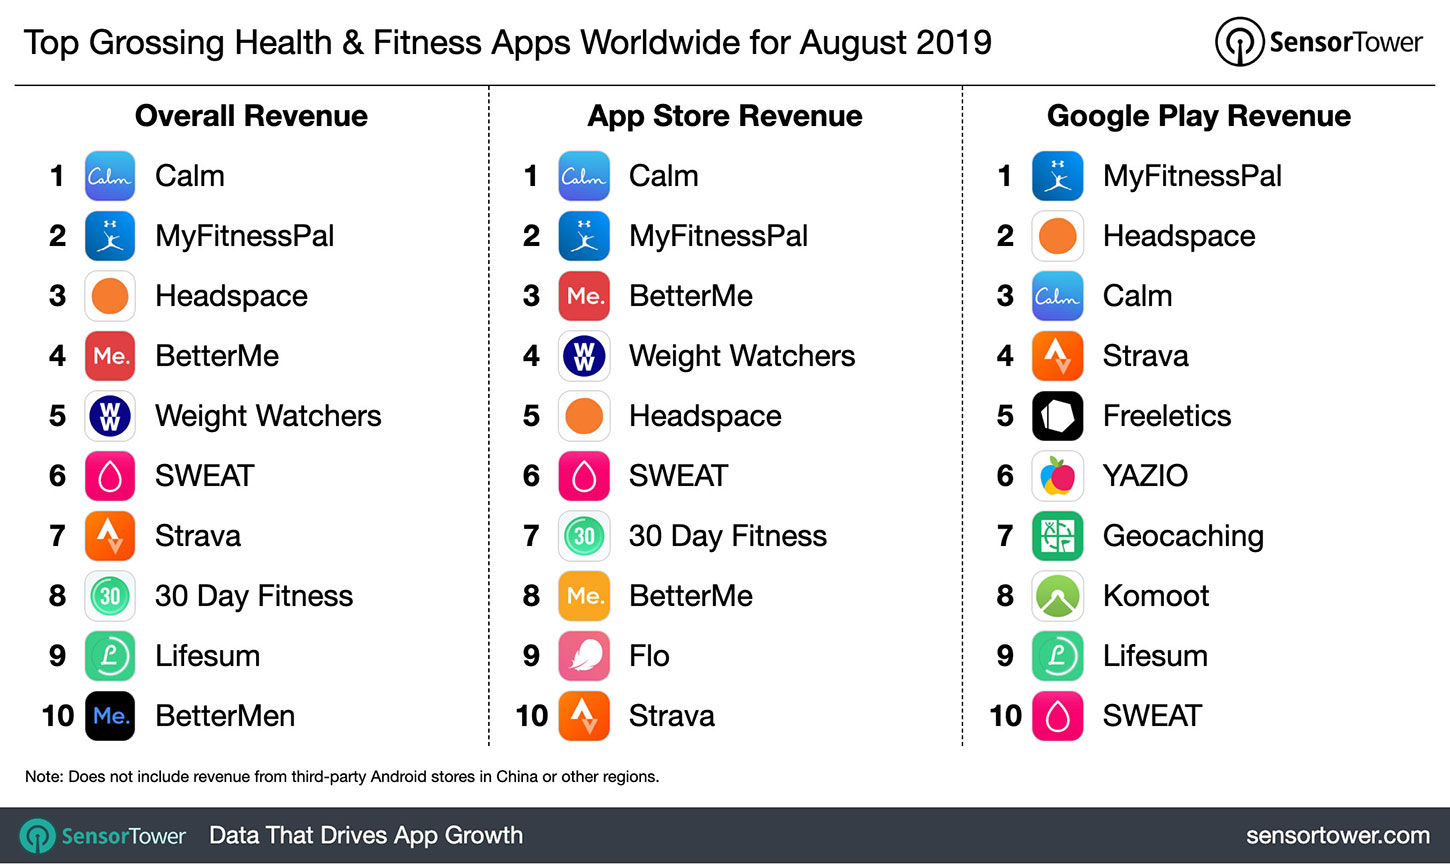 Top Grossing Health & Fitness Apps Worldwide for August 2019